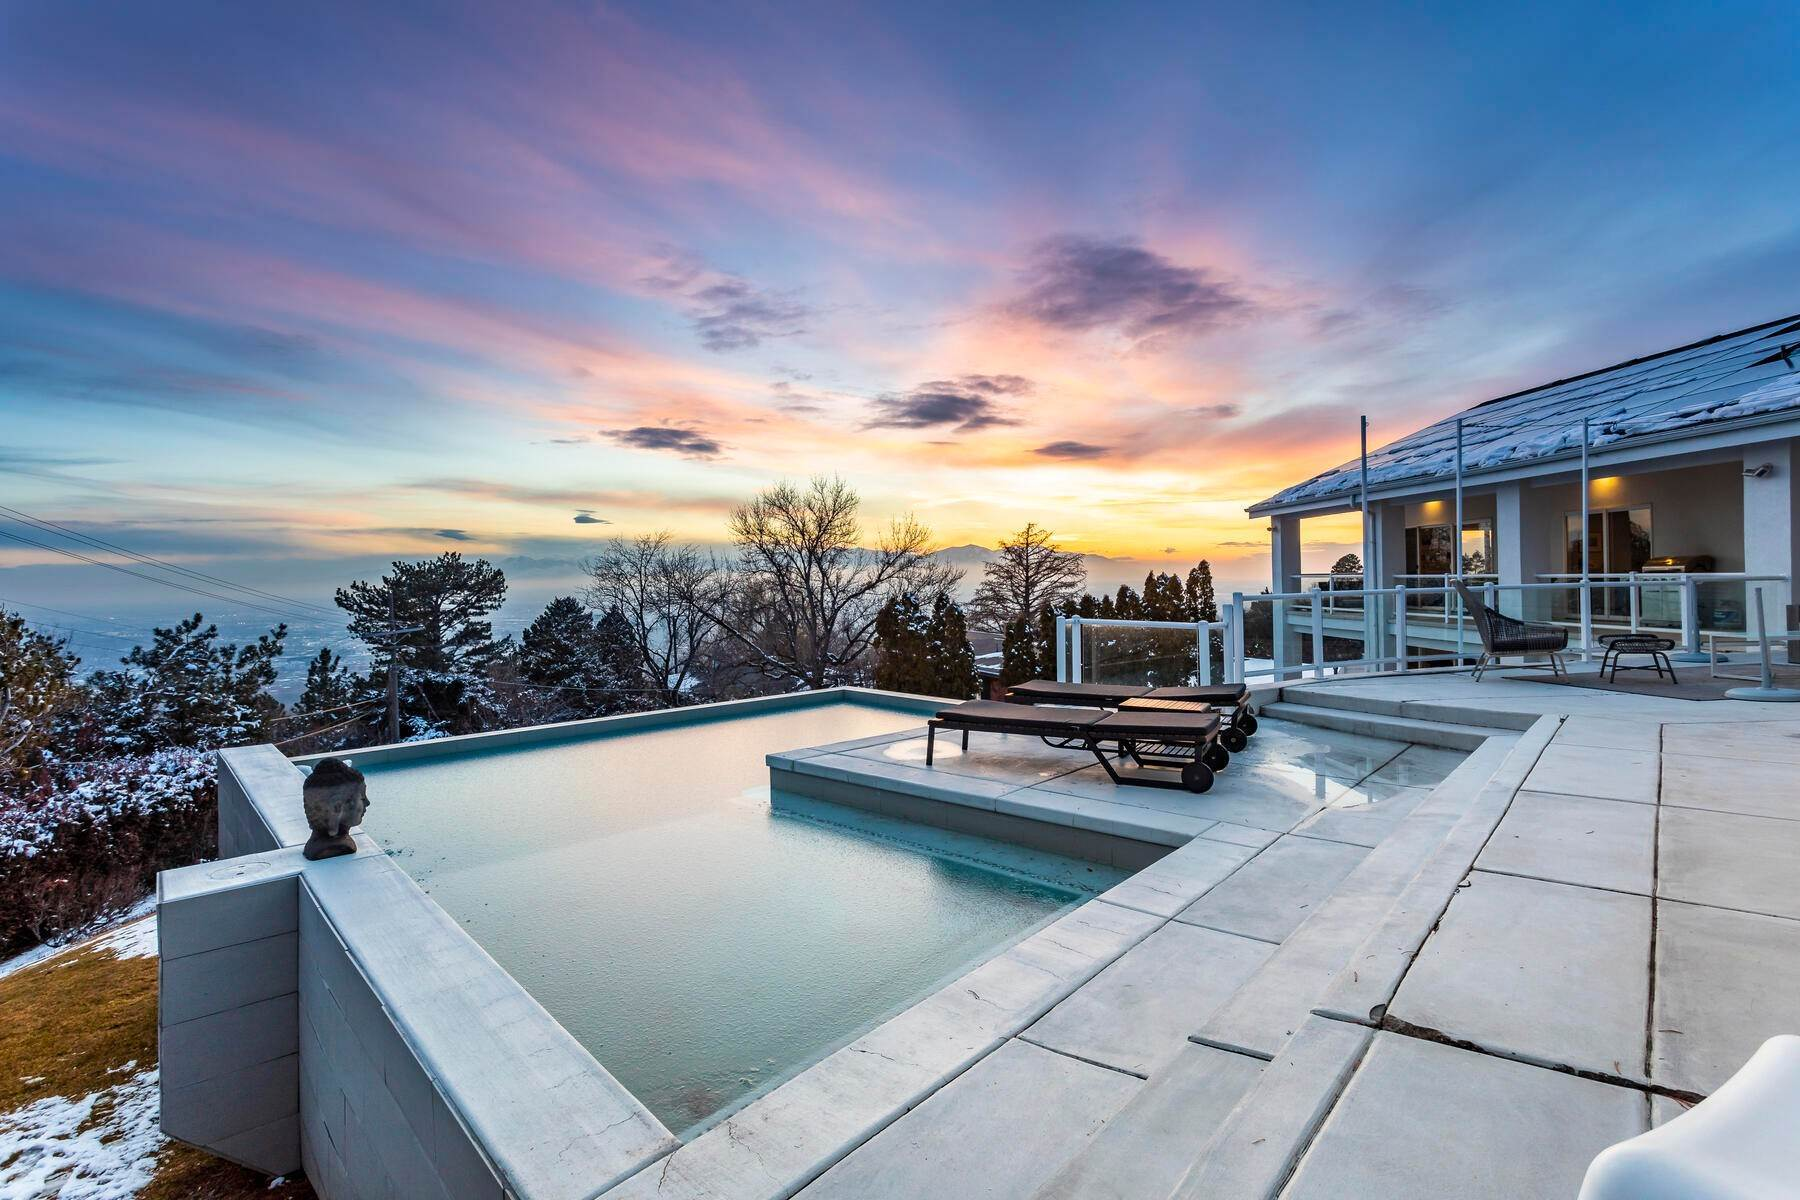 Single Family Homes for Sale at Luxury Living Spectacular Views 732 Northcrest Dr Salt Lake City, Utah 84103 United States